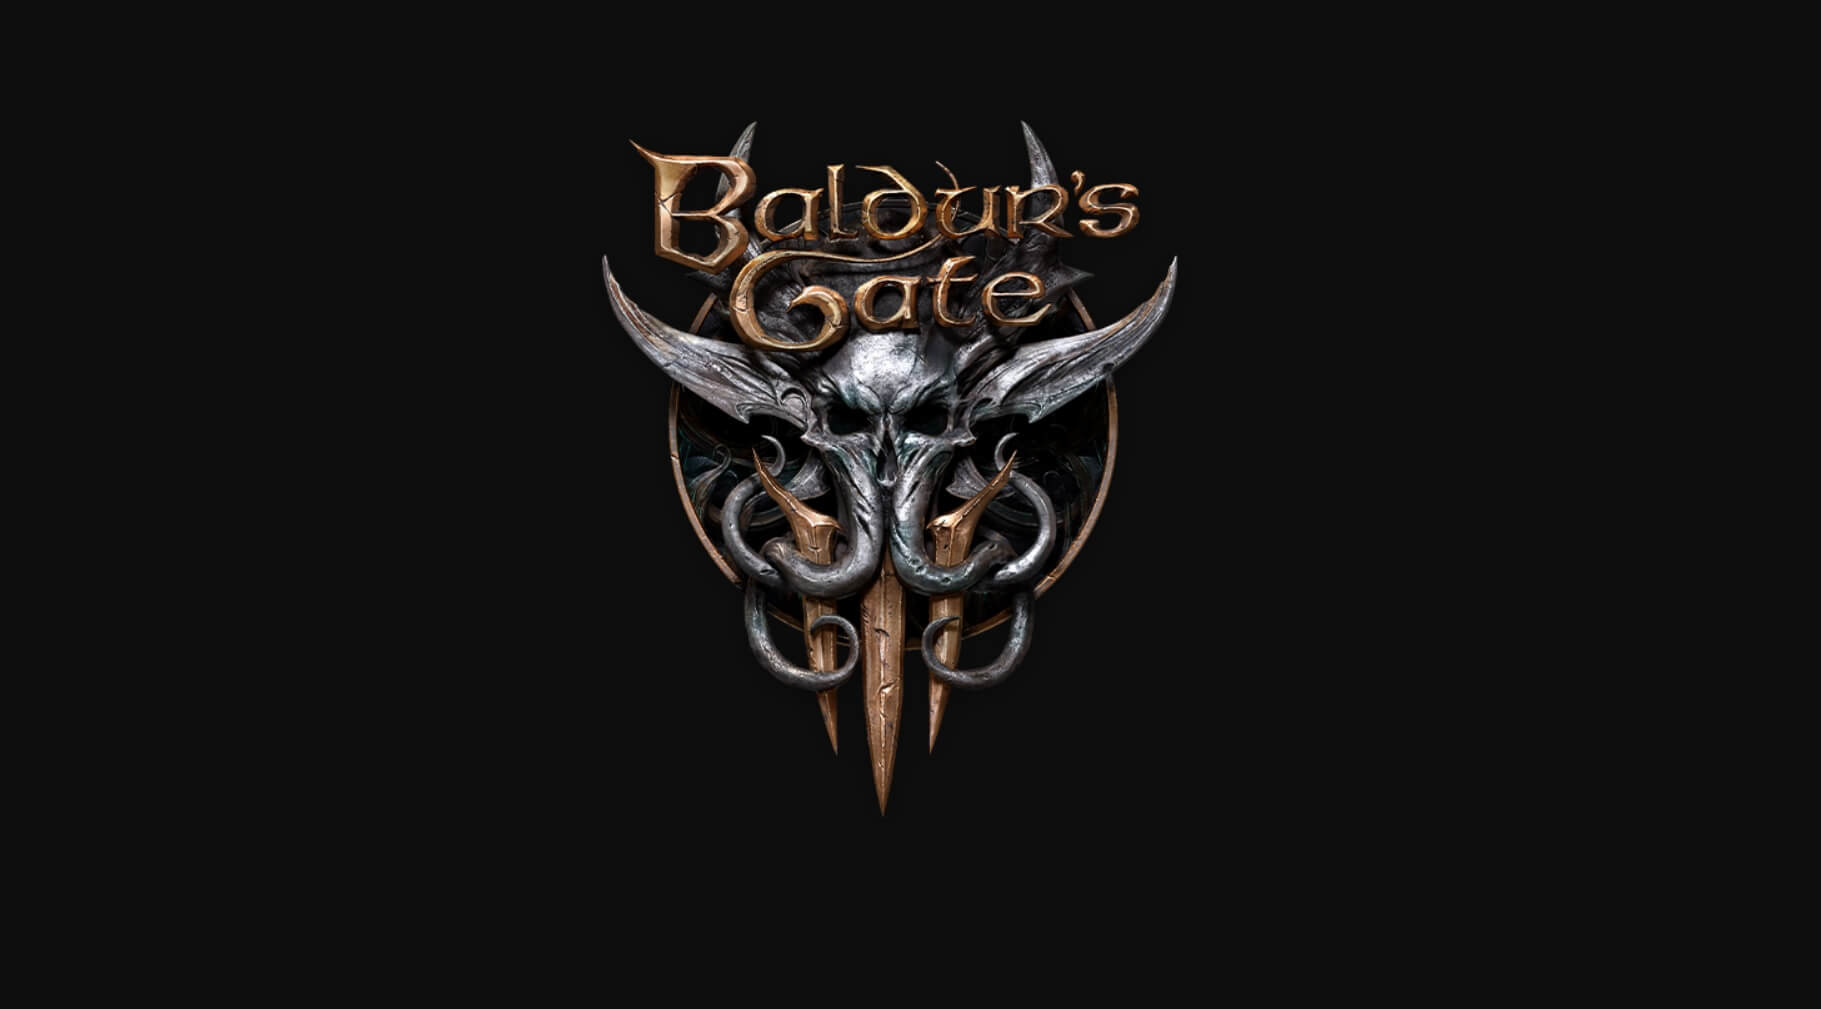 Baldur's Gate 3 'Something's brewing' teaser - DSOGaming